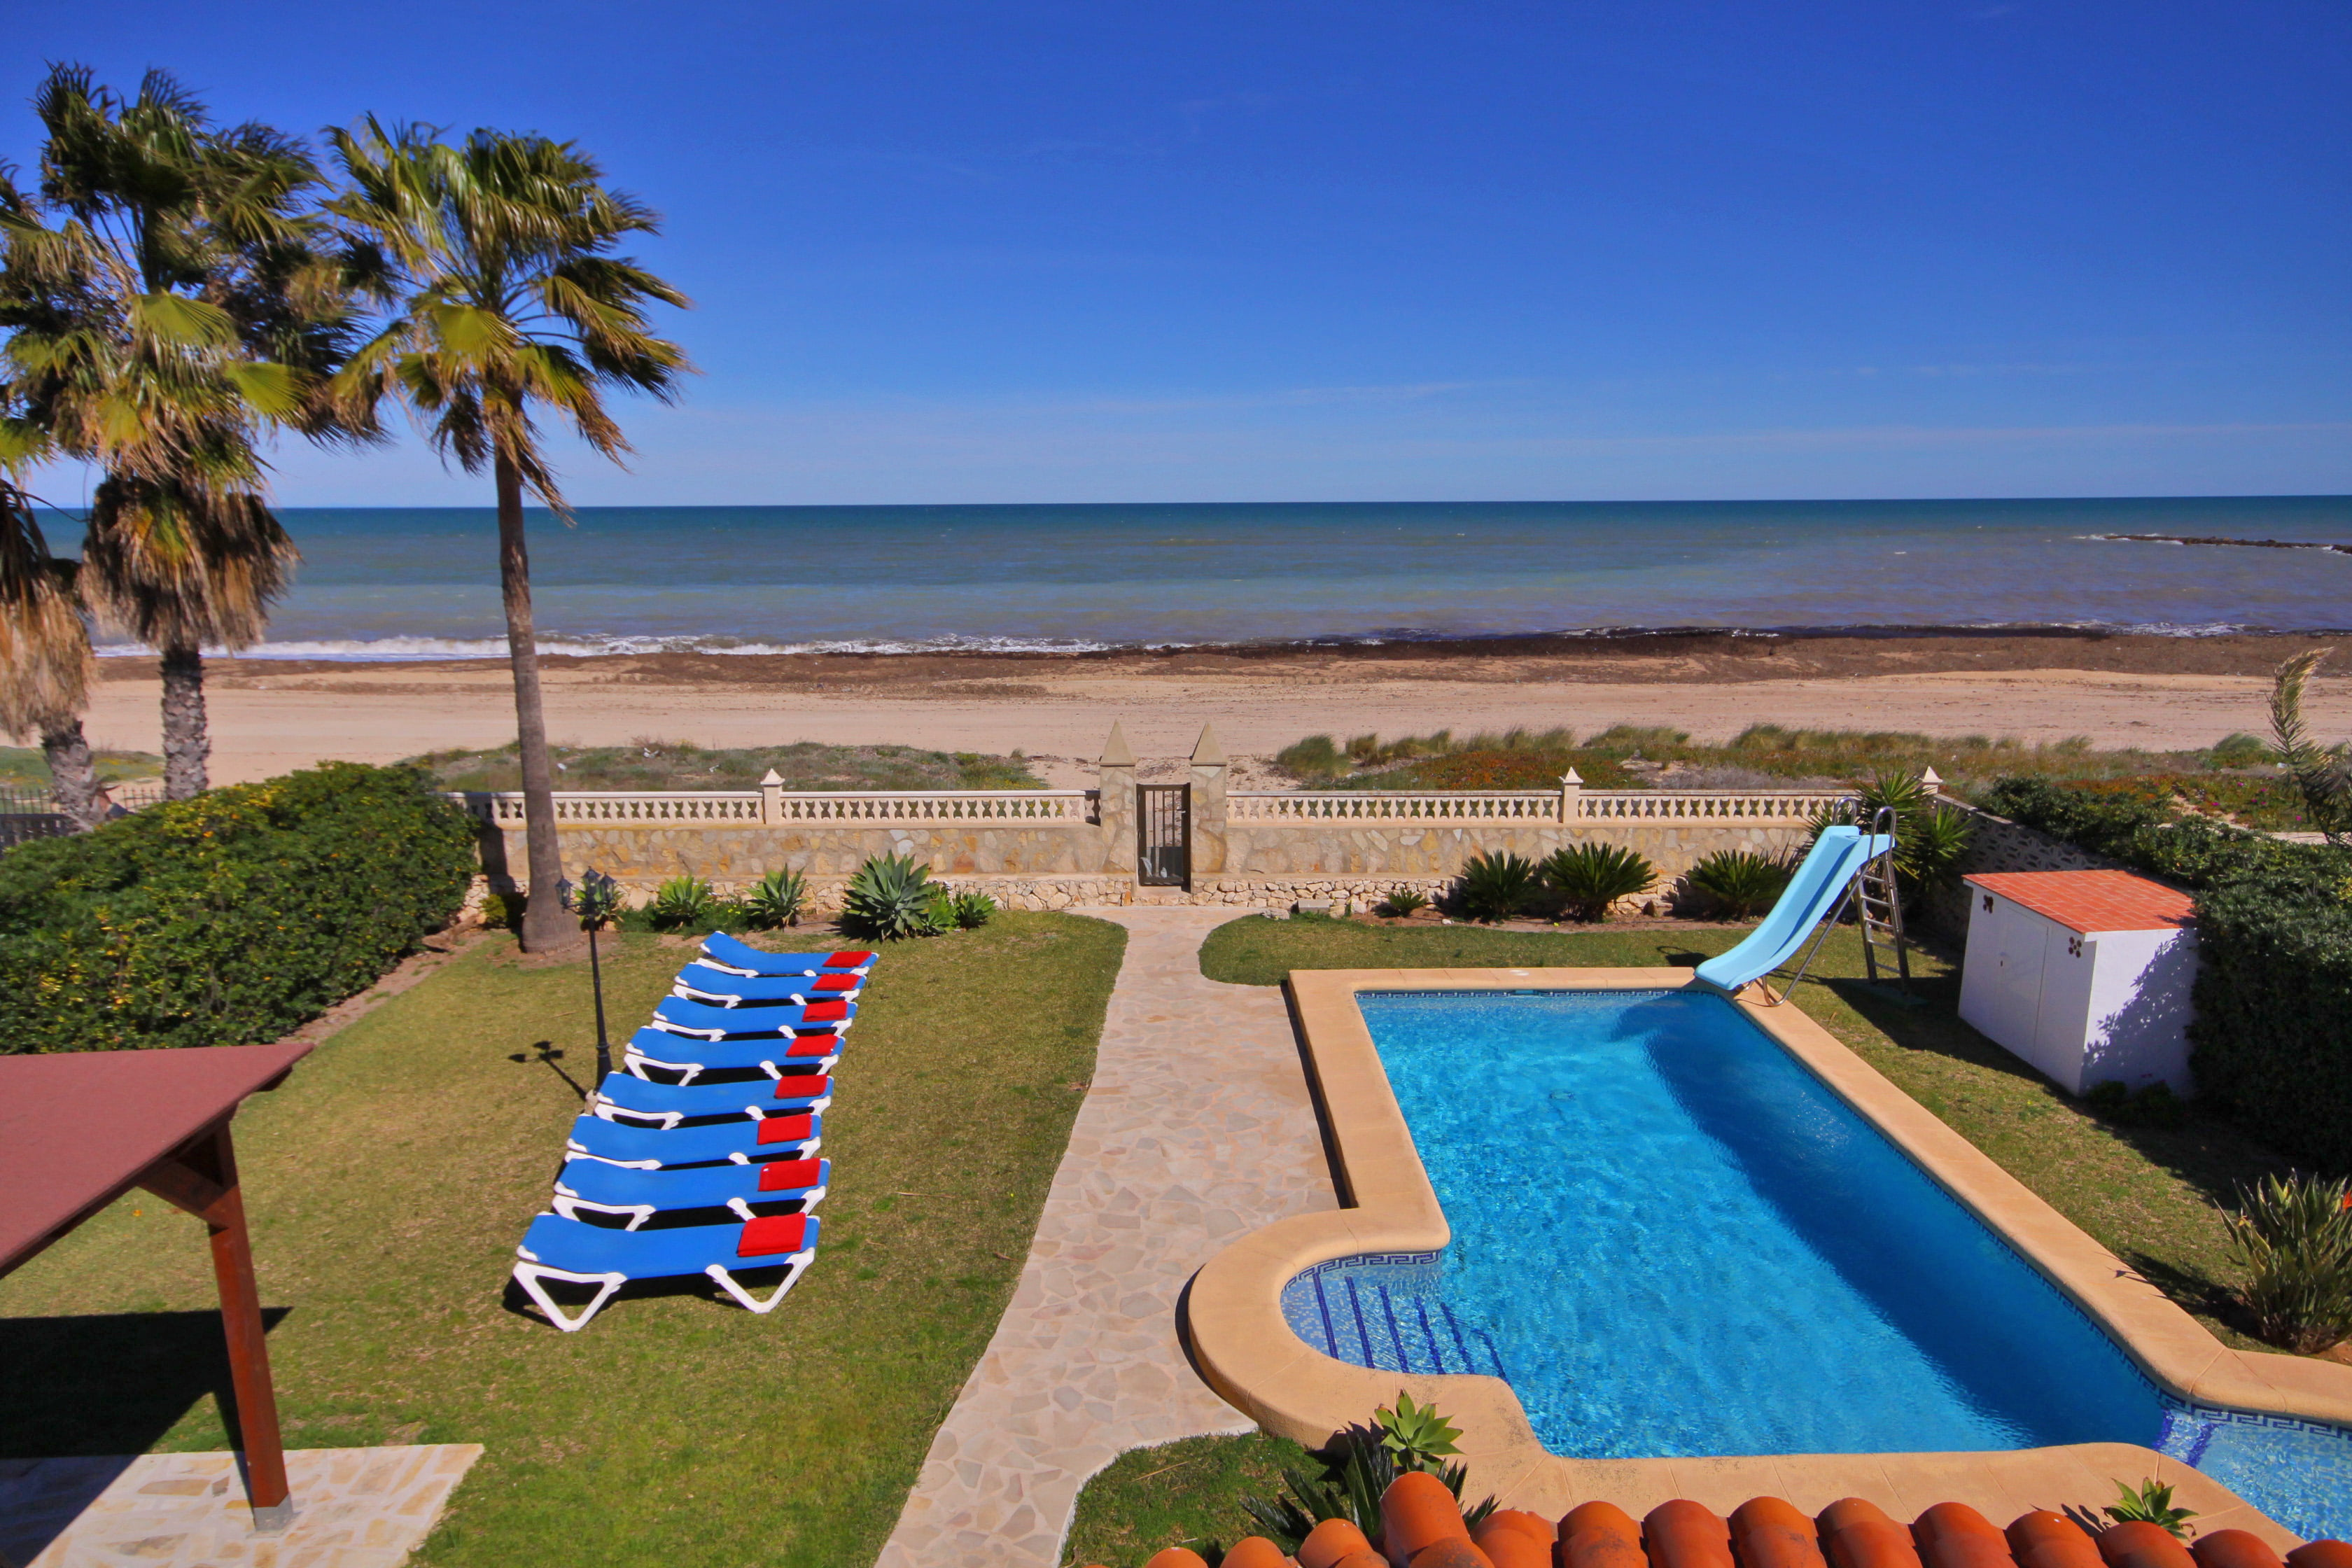 Rent apartments by the sea in Spain